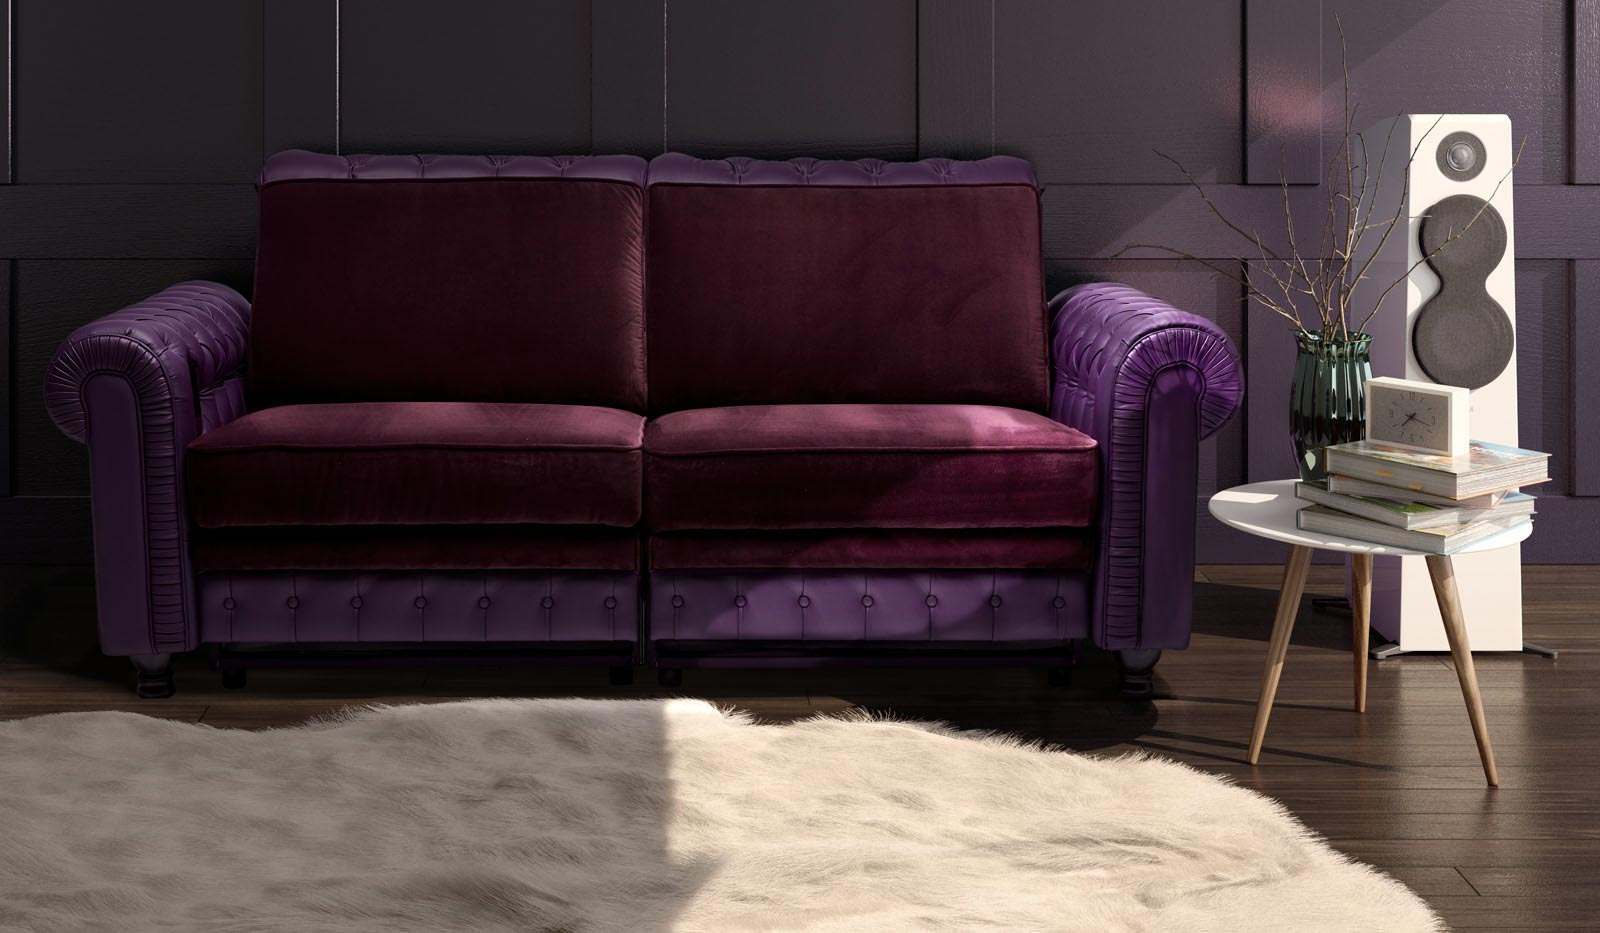 CHESTERFIELD SOFA - Media Room Sofa